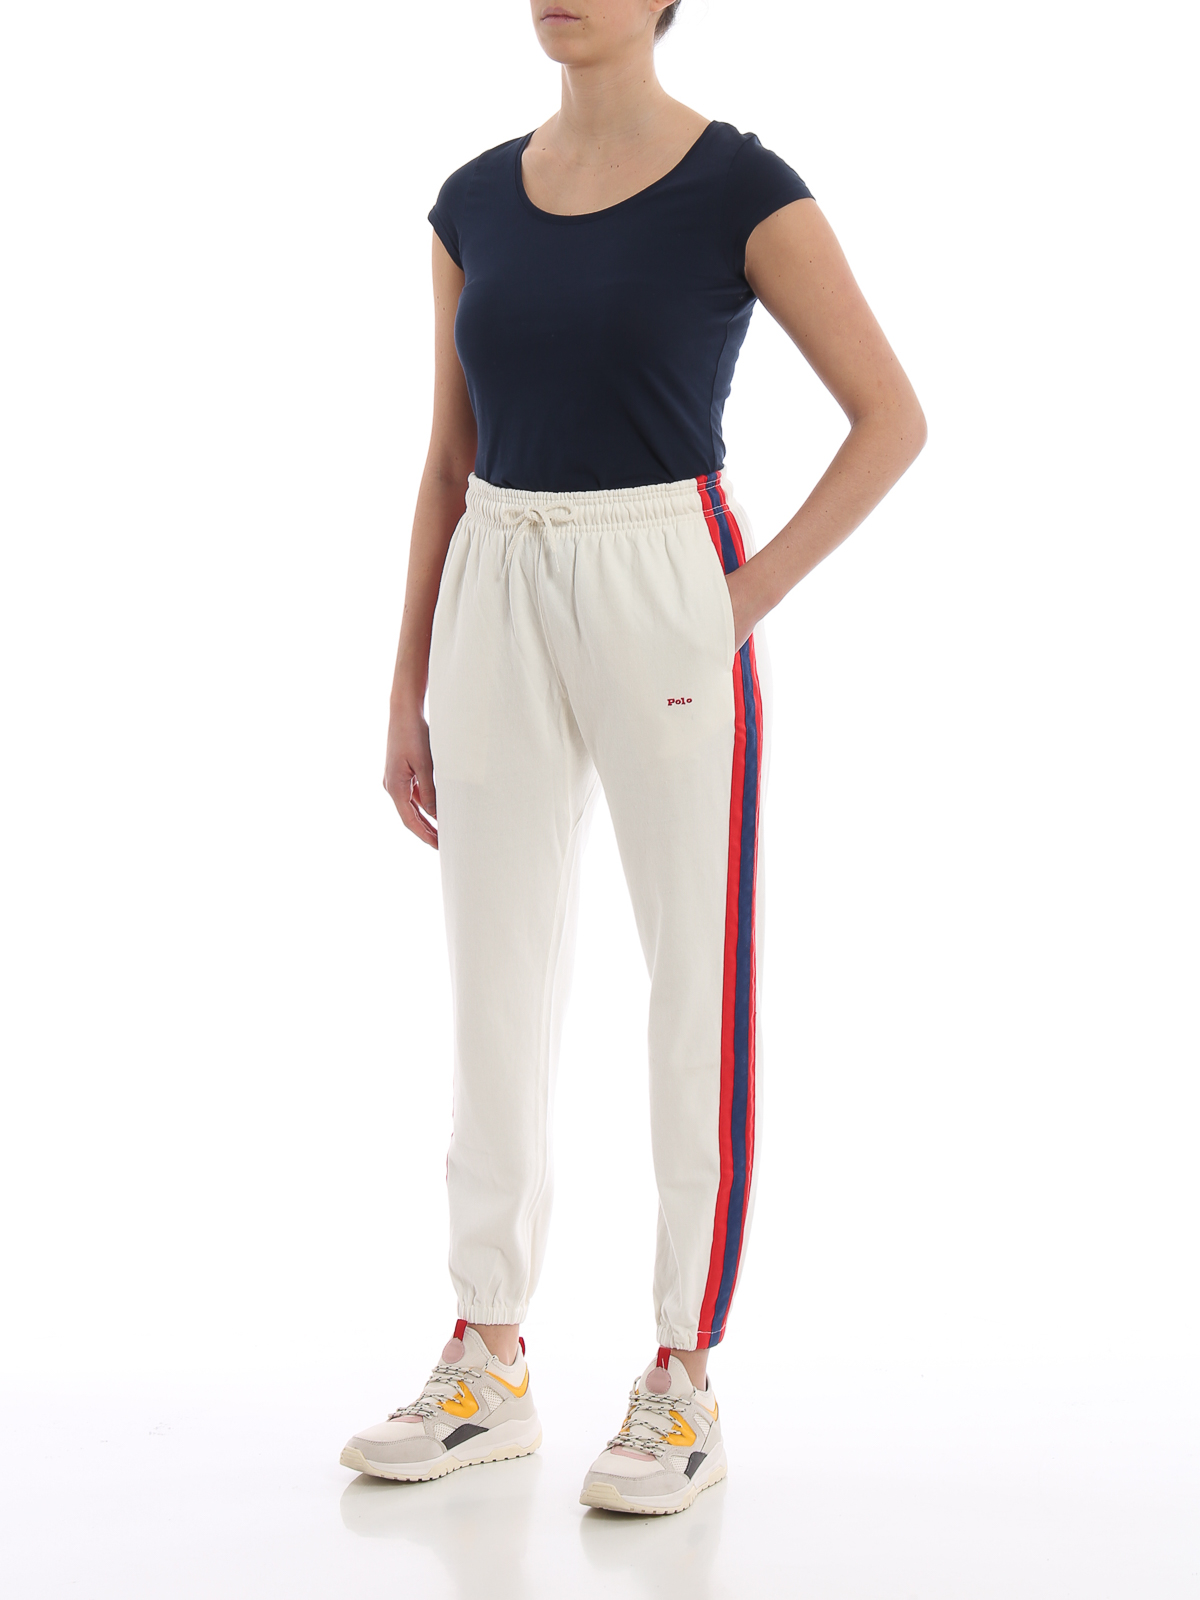 info for 7ddd1 ab99c Polo Ralph Lauren - Side bands white cotton tracksuit ...